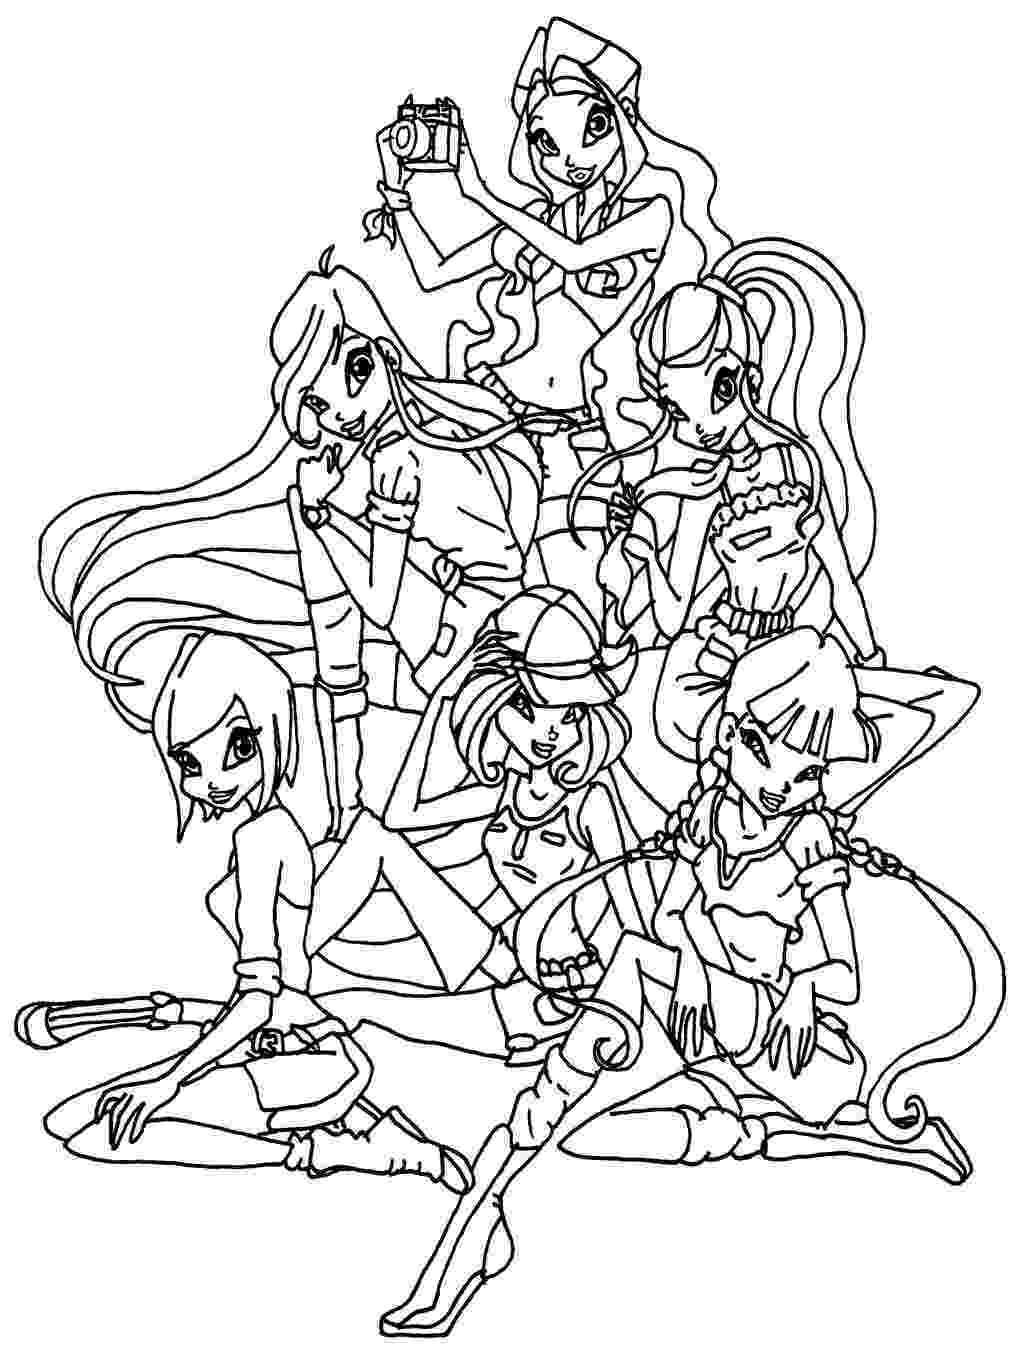 colouring pages for winx free printable winx club coloring pages for kids colouring winx pages for 1 1